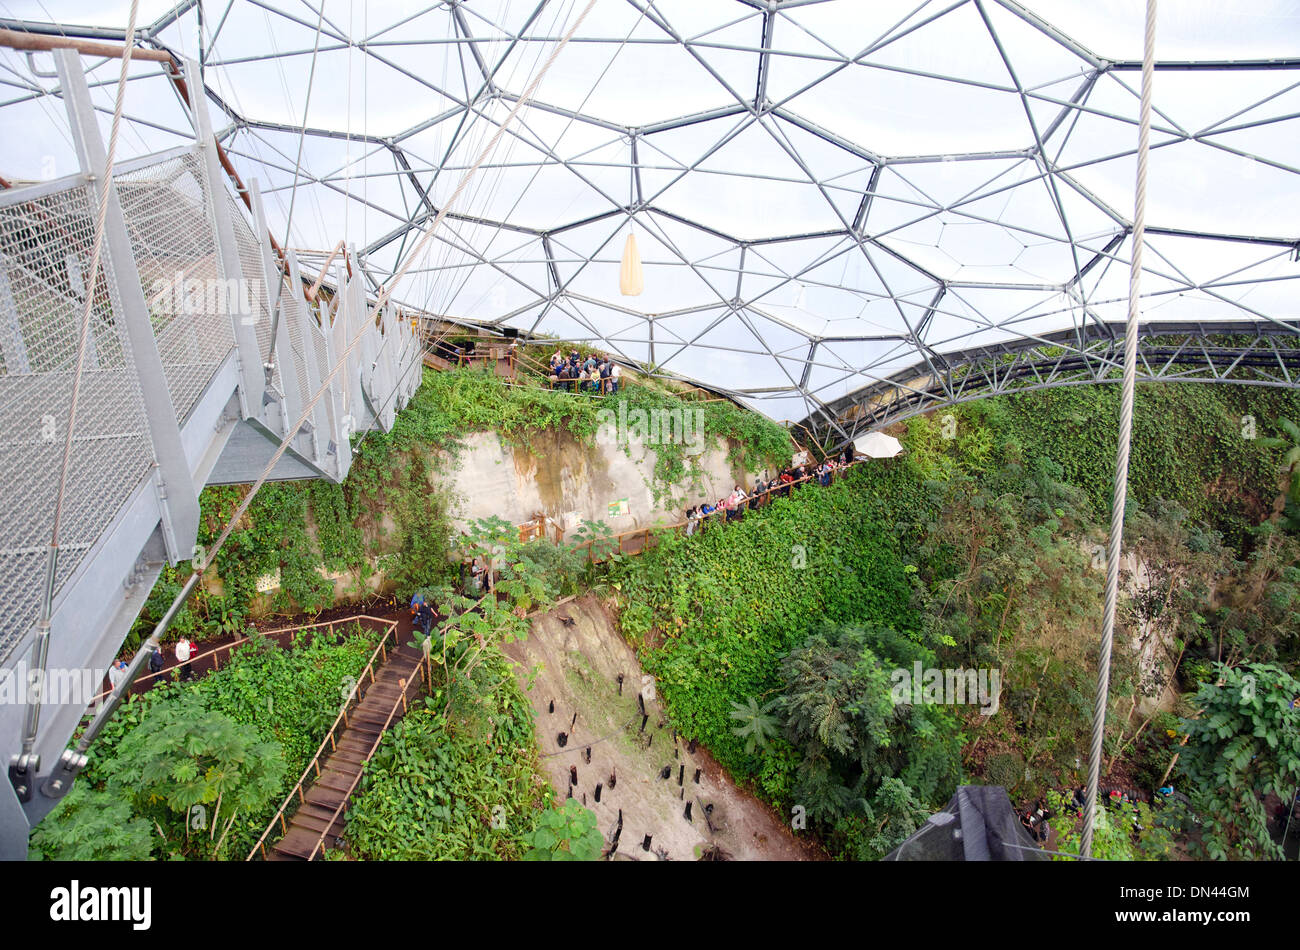 A birds eye view from the high-level viewing platform inside the Tropical Biome at the Eden Project in Cornwall, UK - Stock Image